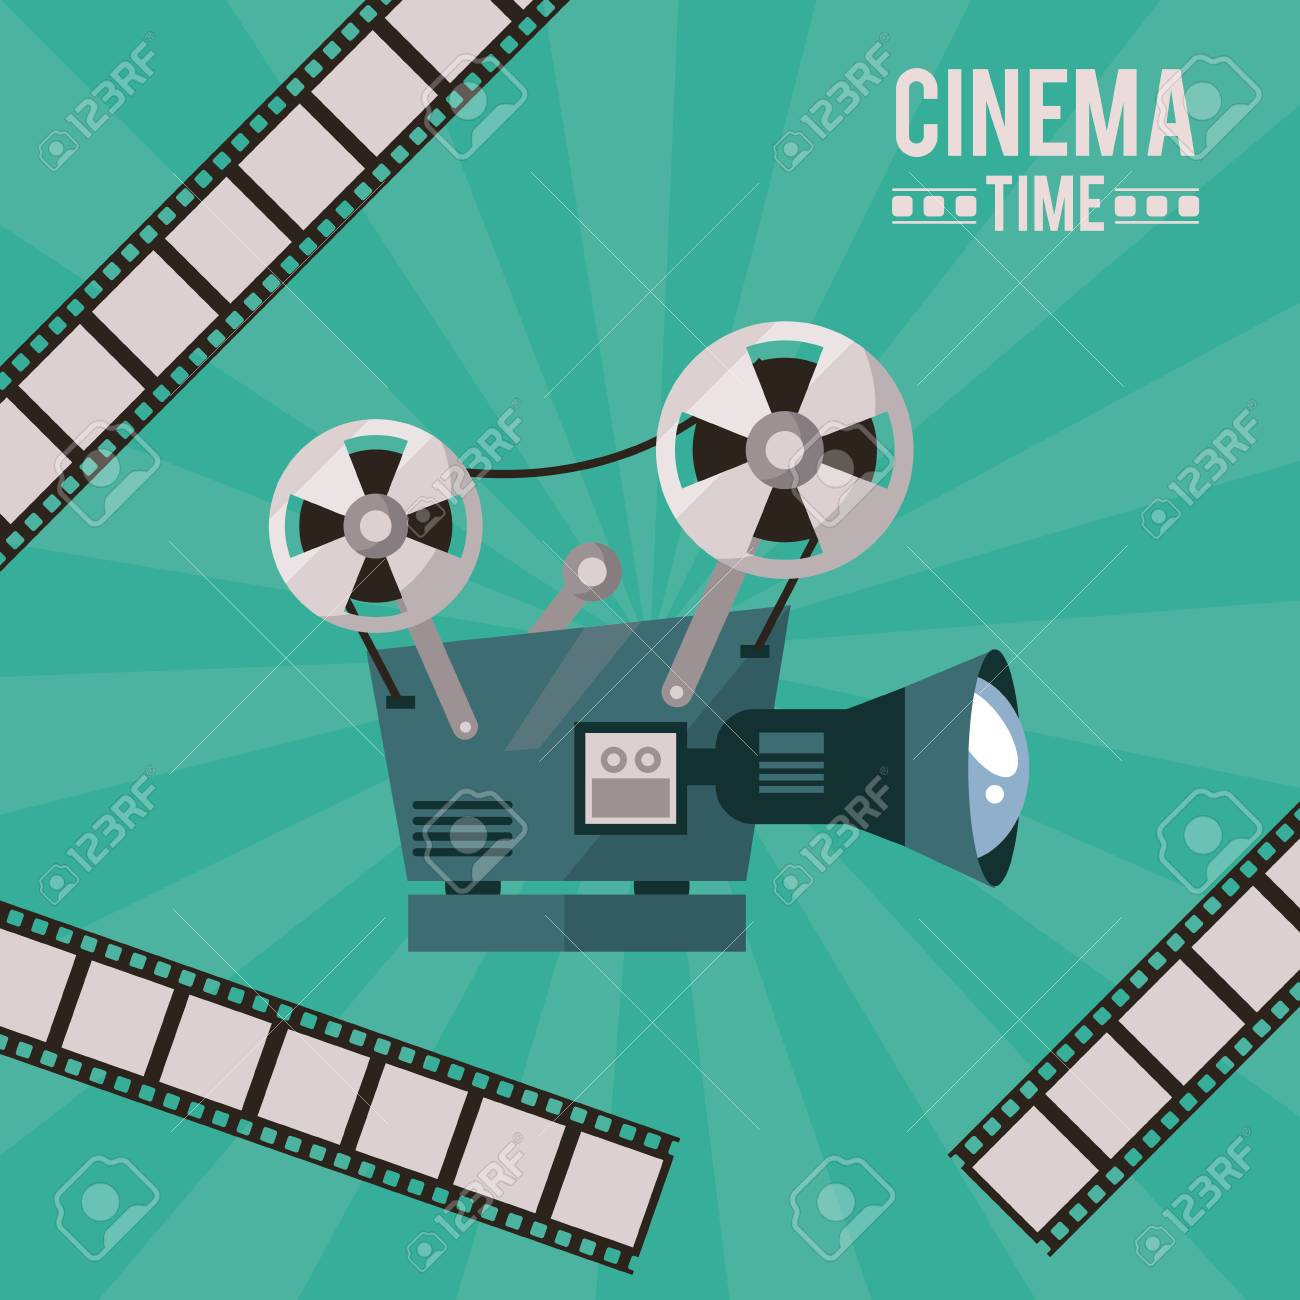 Colorful poster of cinema time with movie projector and film colorful poster of cinema time with movie projector and film tape vector illustration stock vector ccuart Gallery